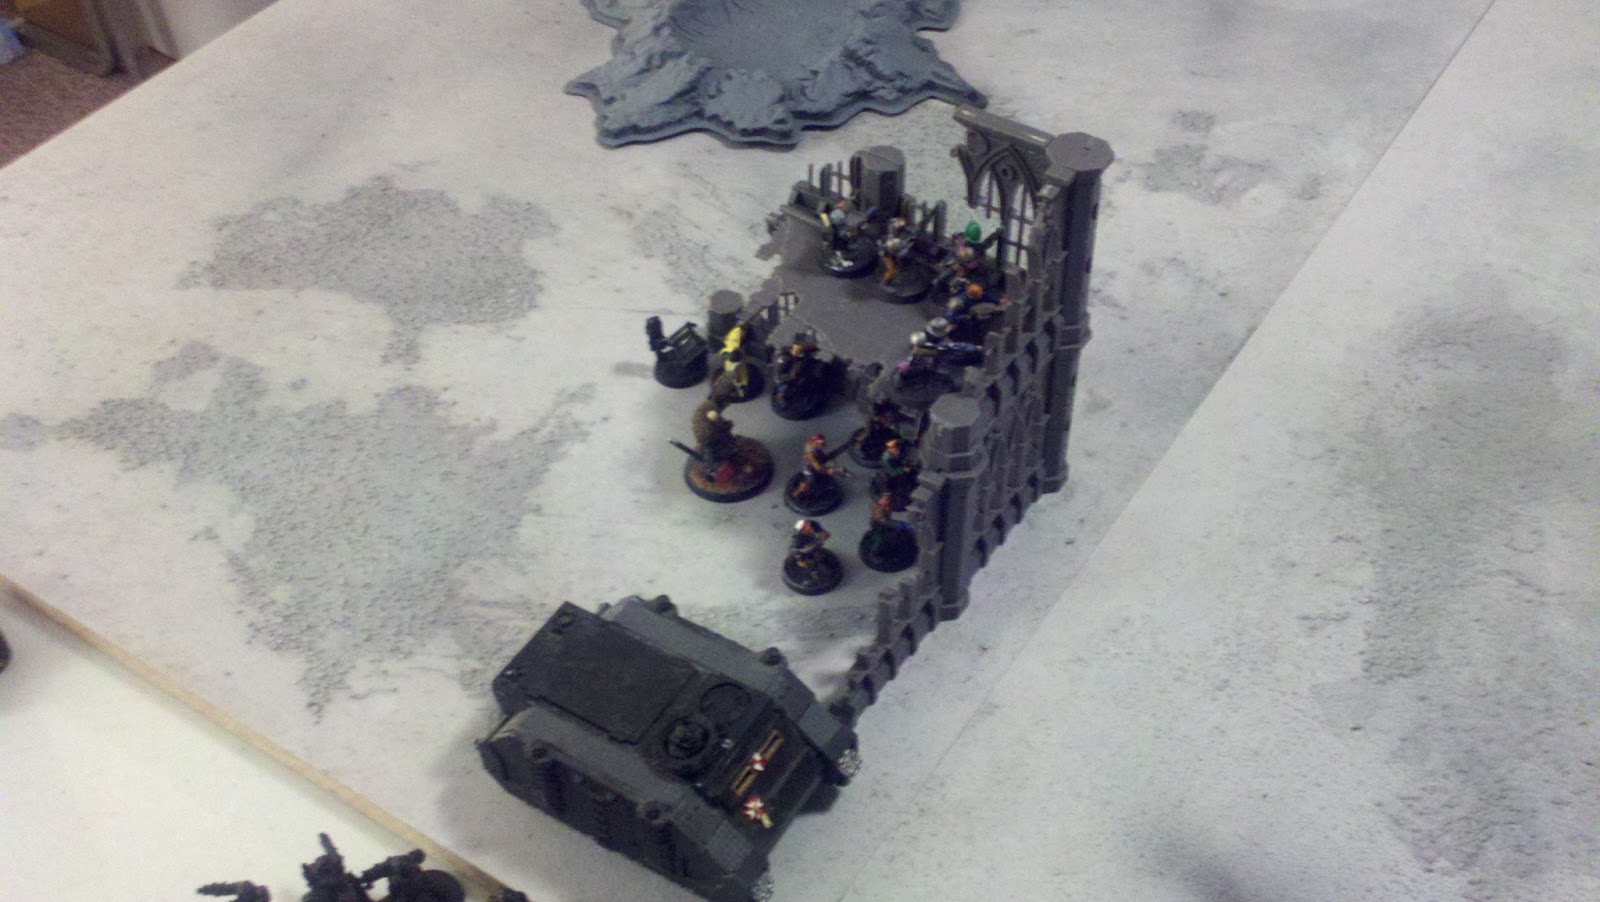 Coteaz and his band of 12 Warriors take objective #2 and set up a ...